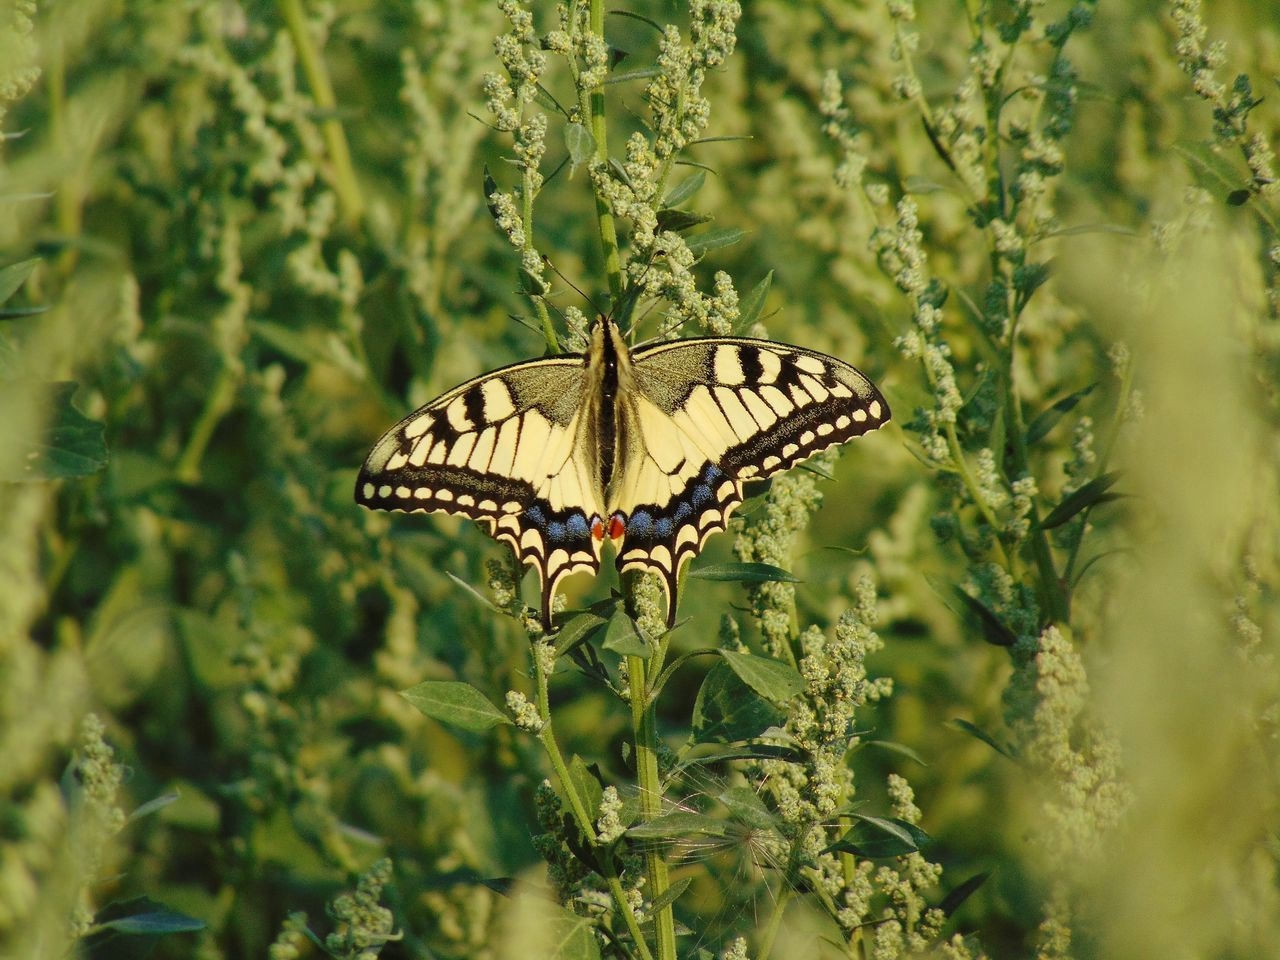 animals in the wild, animal themes, insect, one animal, butterfly - insect, nature, butterfly, animal wildlife, growth, plant, no people, day, outdoors, beauty in nature, spread wings, fragility, close-up, perching, freshness